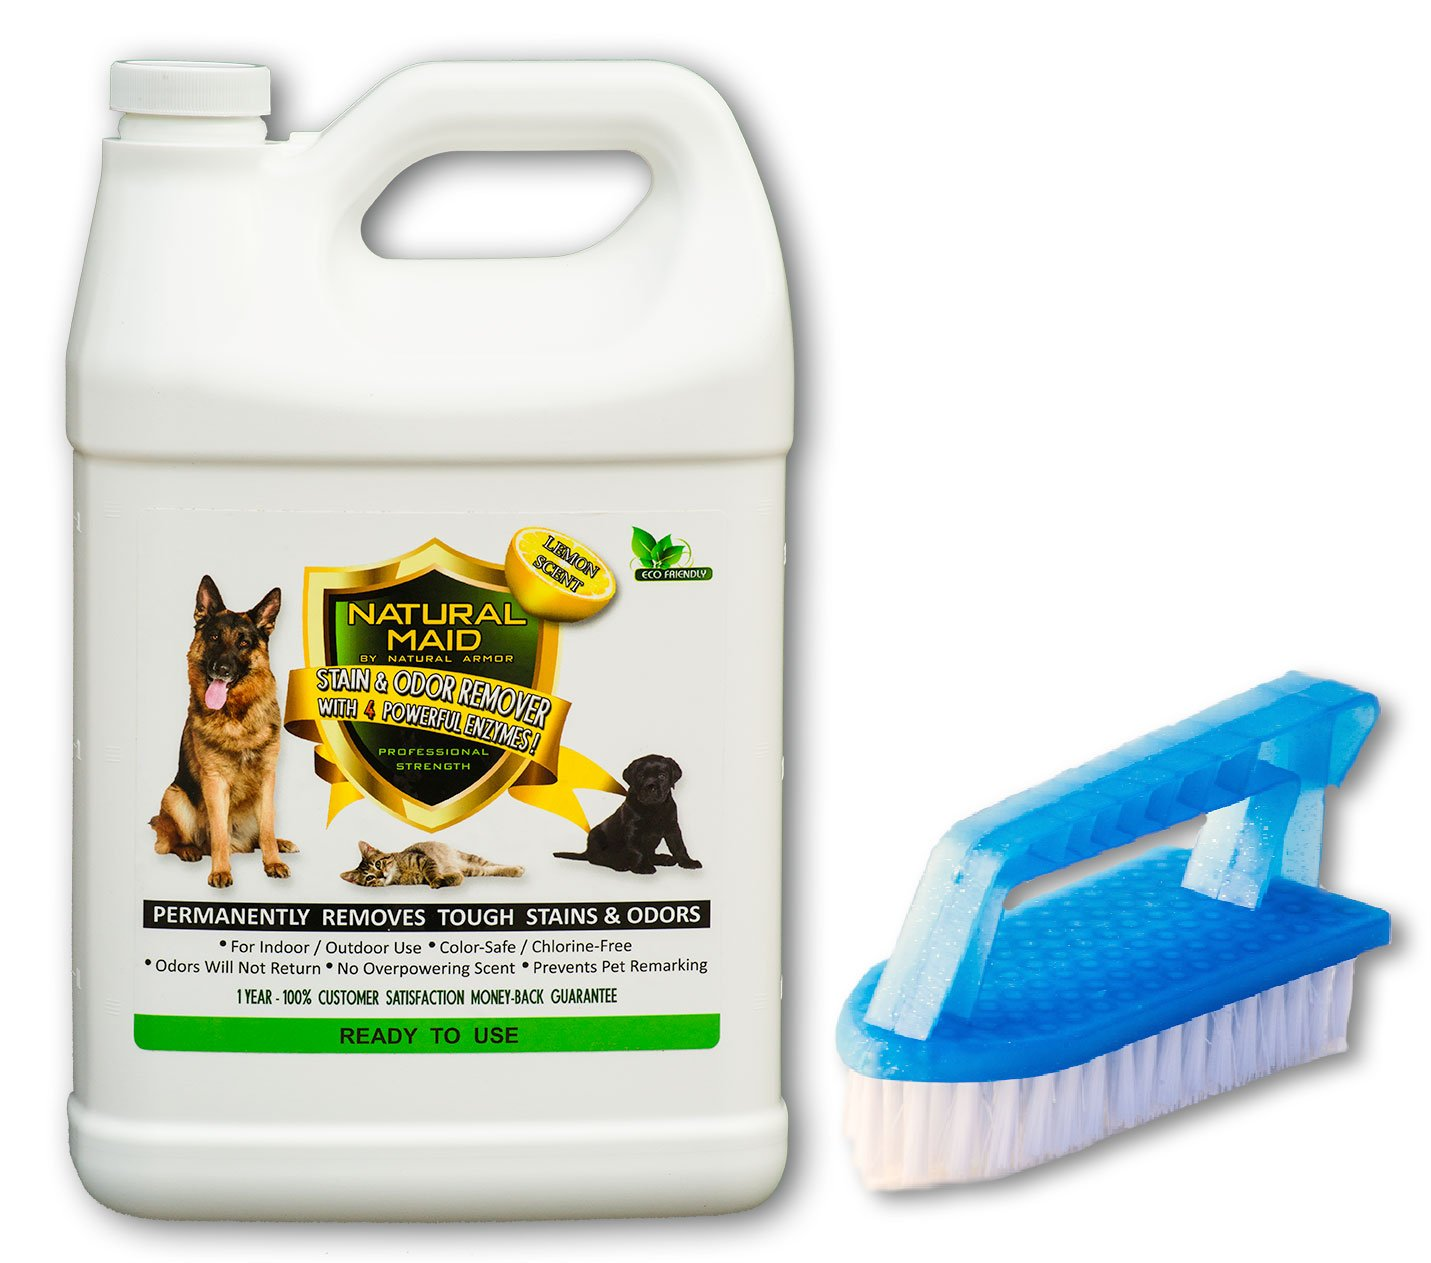 Natural Maid Professional Strength Pet Stain & Odor Remover & Eliminator with 4 Powerful Enzymes - Lemon Scent 128 Ounce Gallon Ready To Use Multi Surface Cleaner